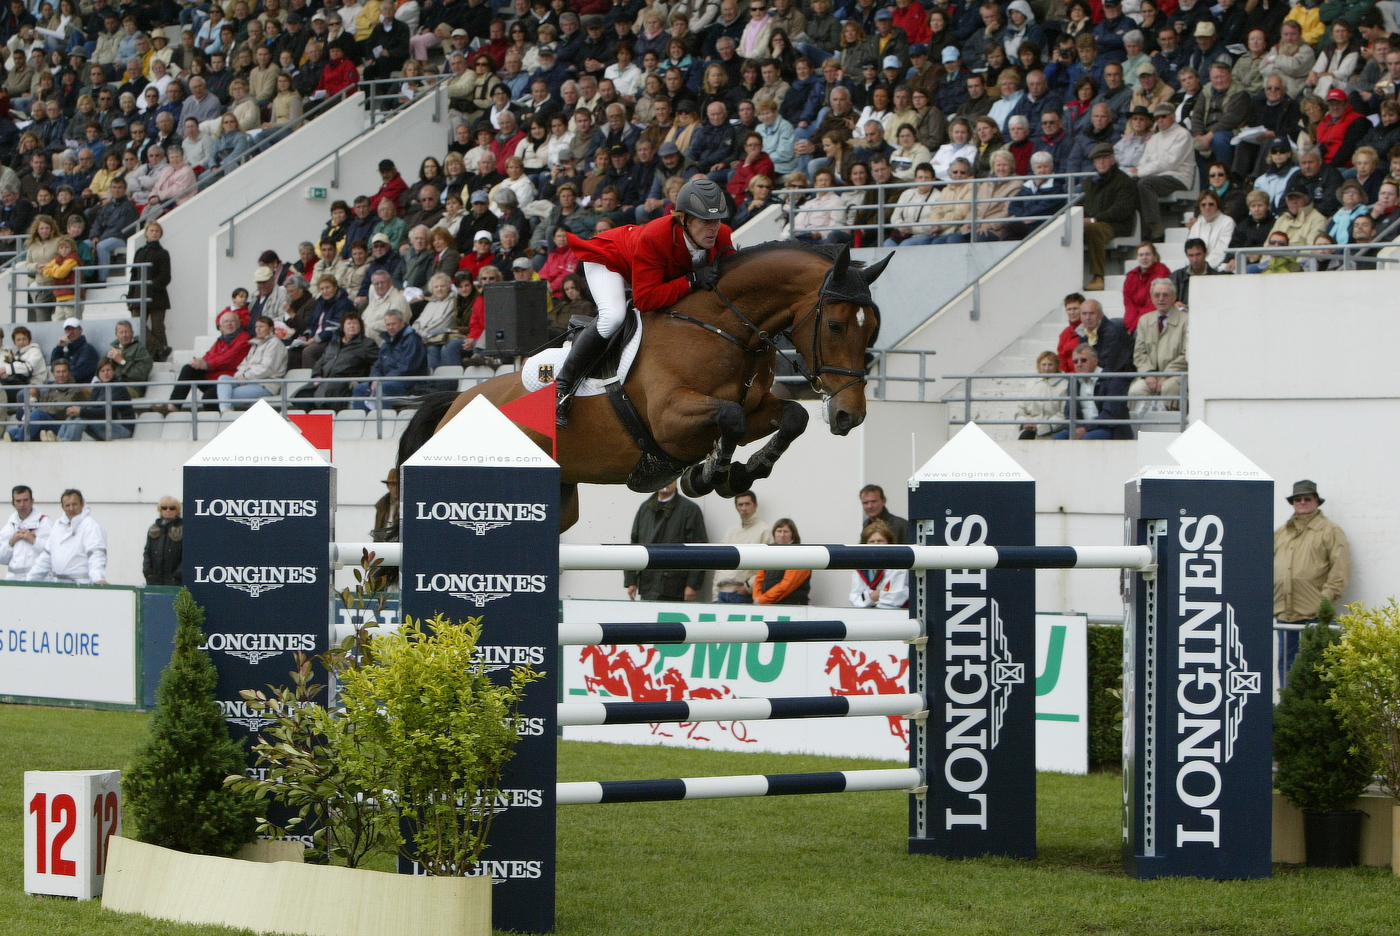 Longines Show Jumping Event: Longines and equestrian sports: elegance and precision in the Bird's Nest 4